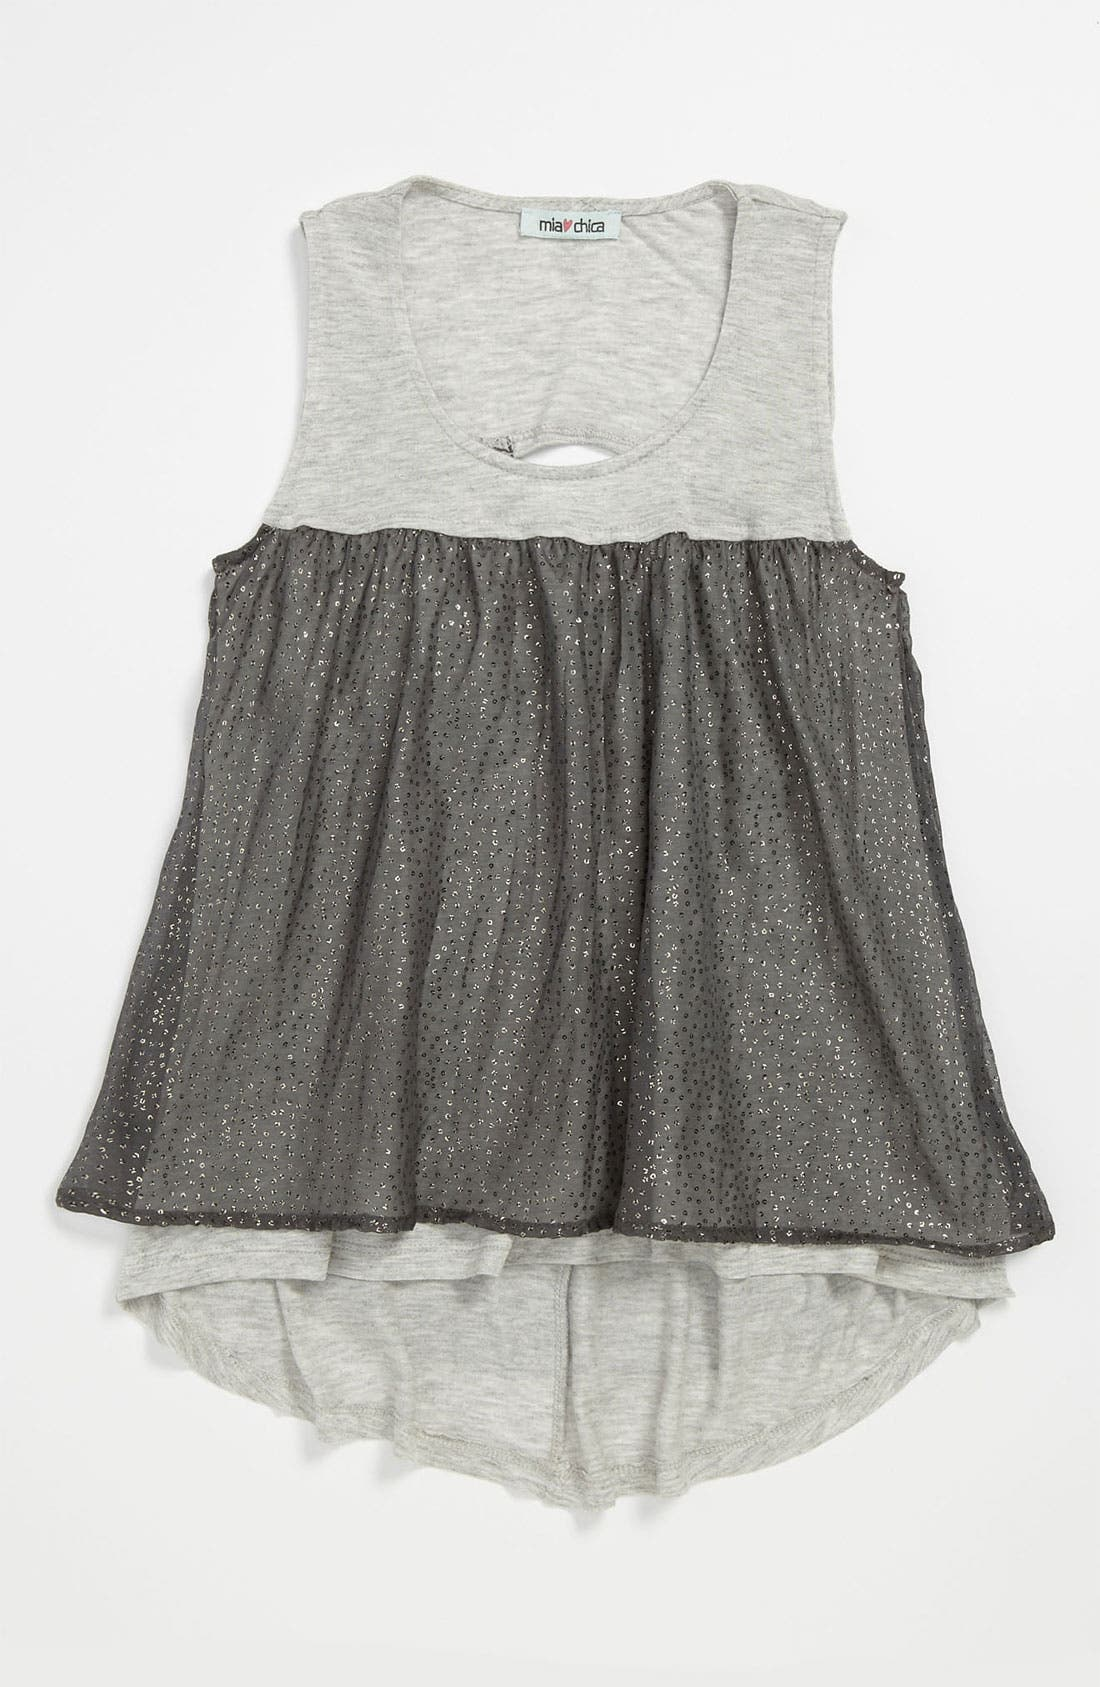 Alternate Image 1 Selected - Mia Chica Chiffon Tank Top (Big Girls)